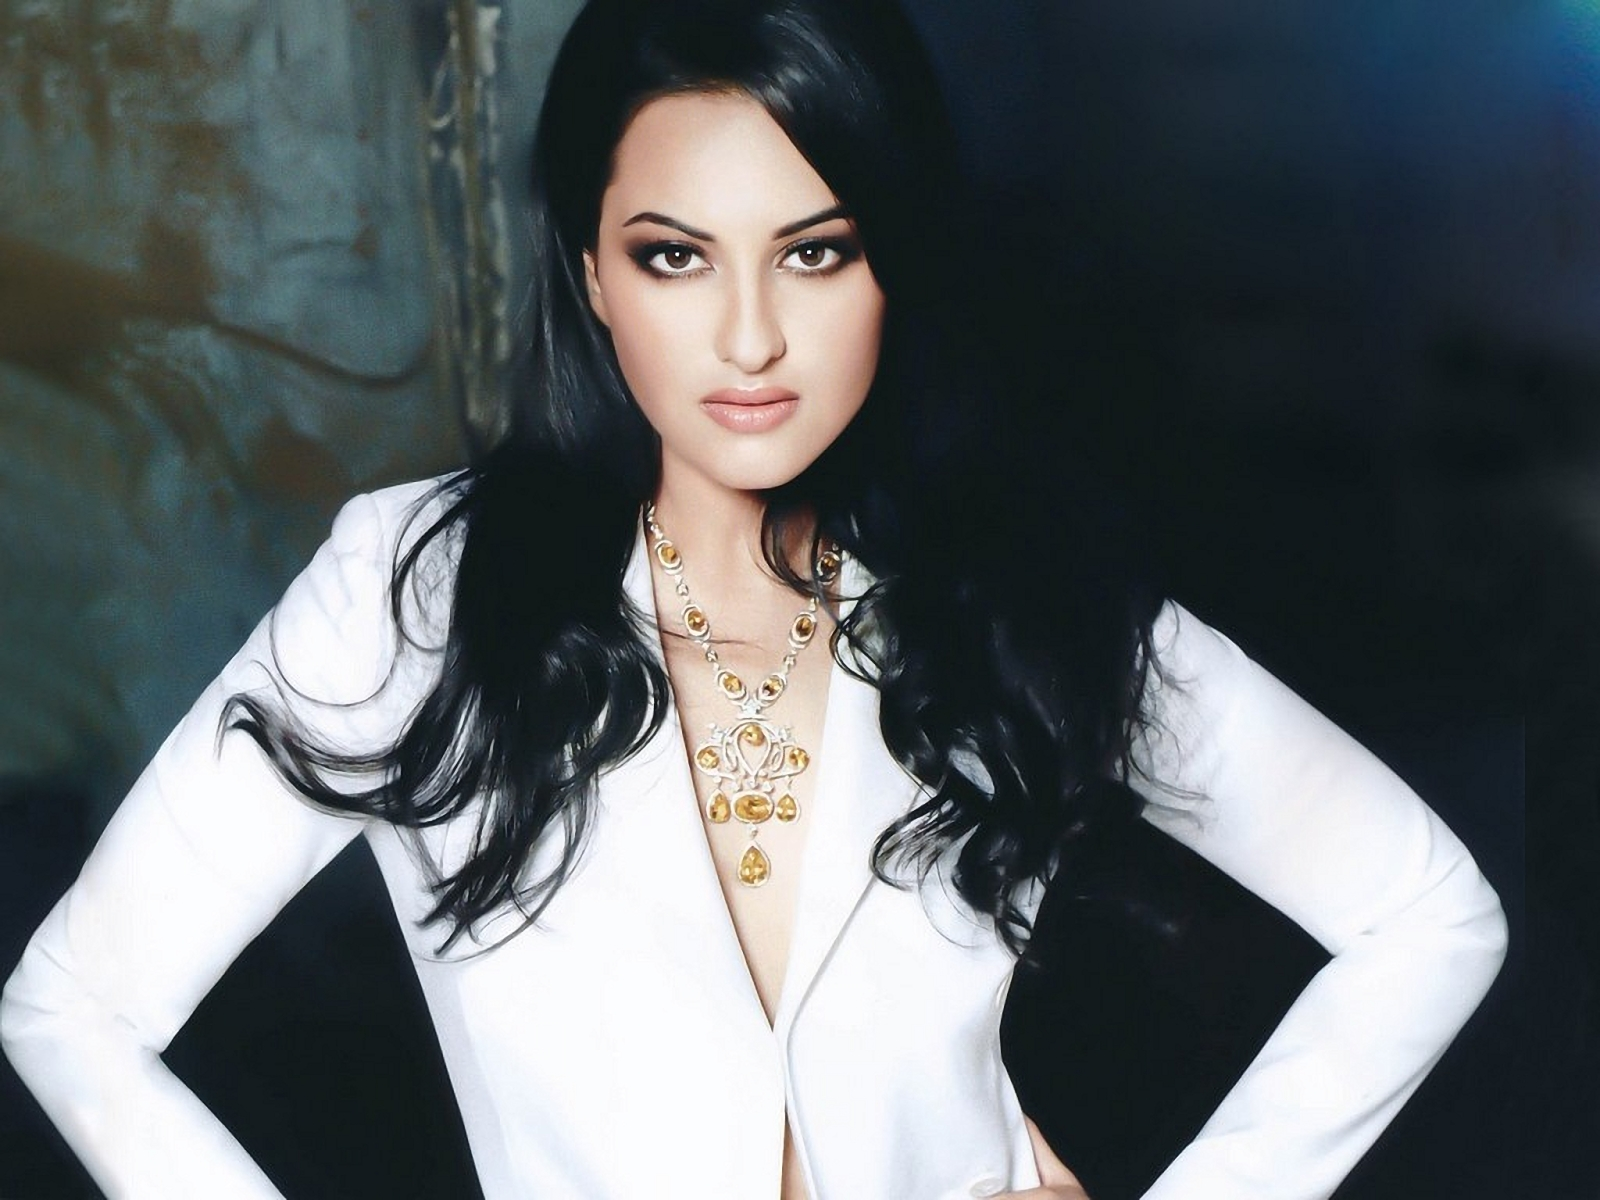 sonakshi sinha latest hd wallpapers - photo #35